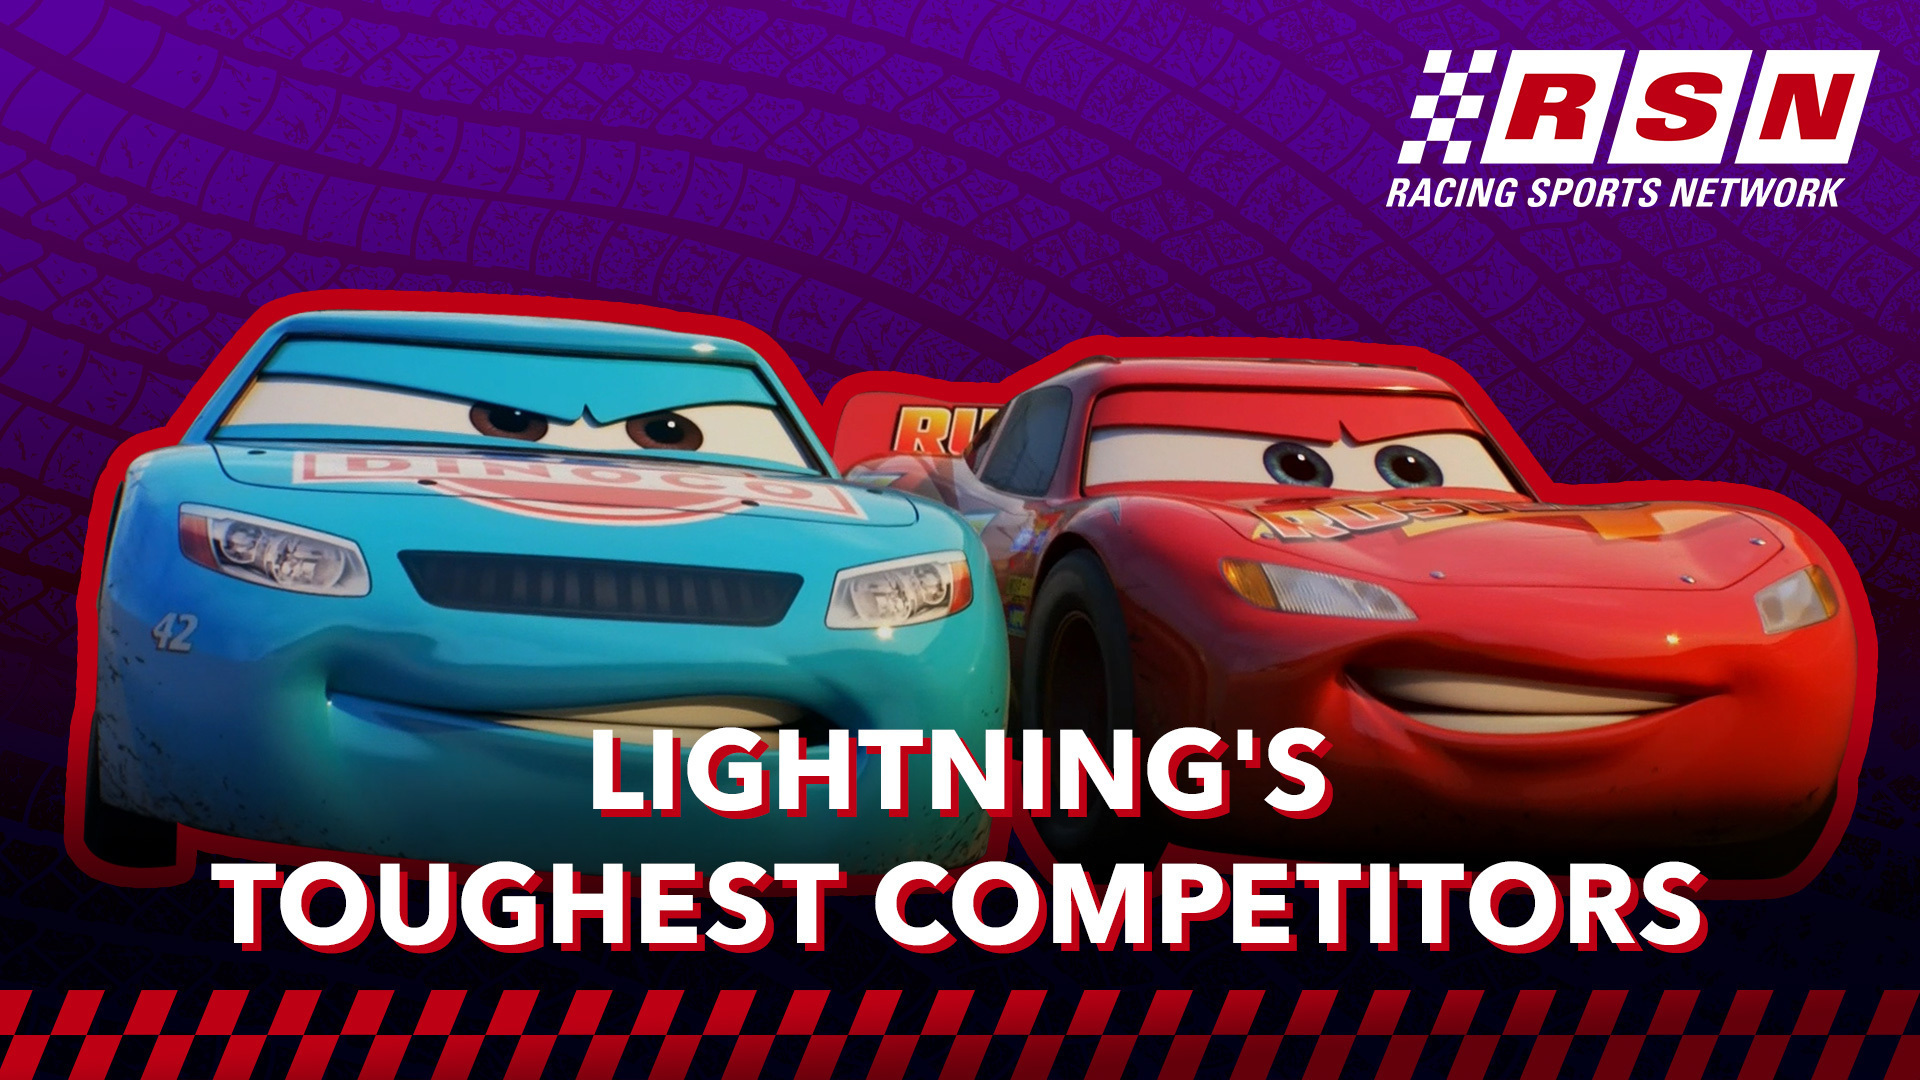 Lightning's Toughest Competitors | Racing Sports Network by Disney